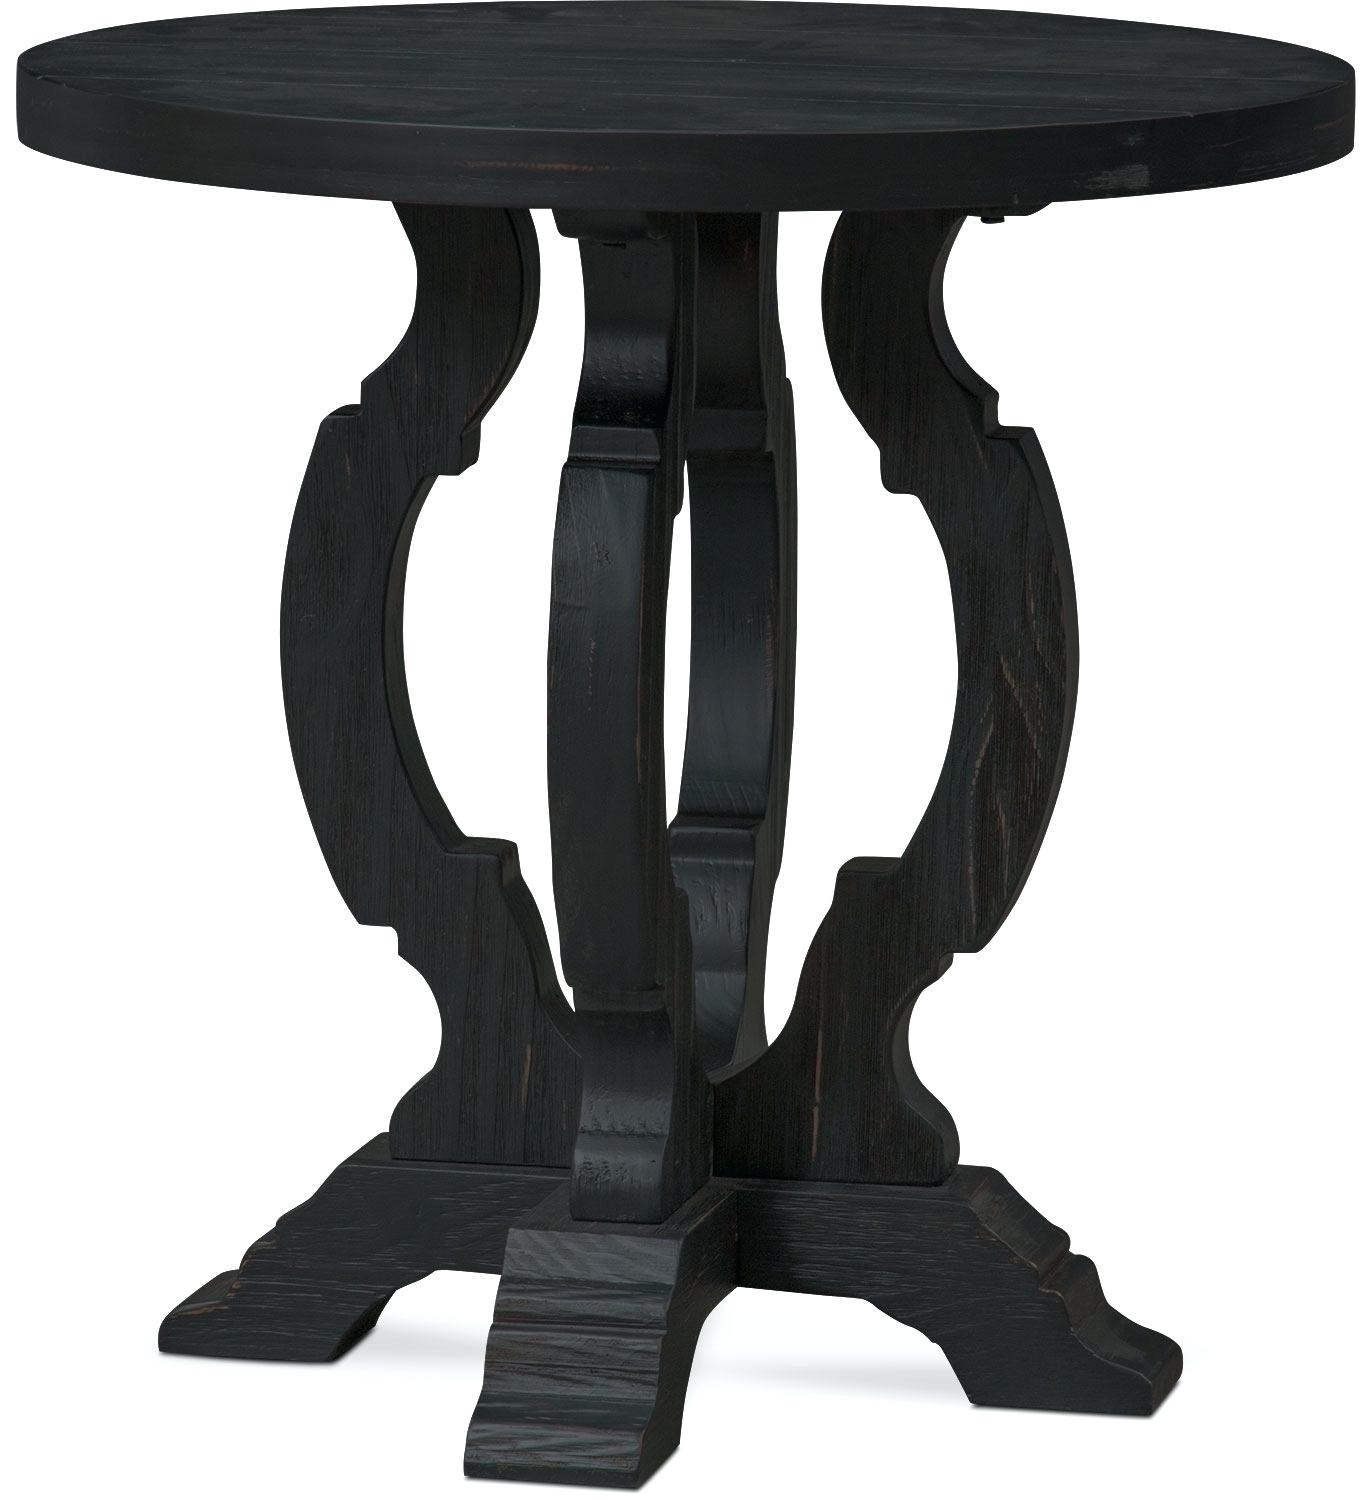 black accent table wood round flare square legs shelf and occasional furniture metal patio with umbrella hole wine rack rectangle glass coffee nate berkus bath rug ceramic lamps